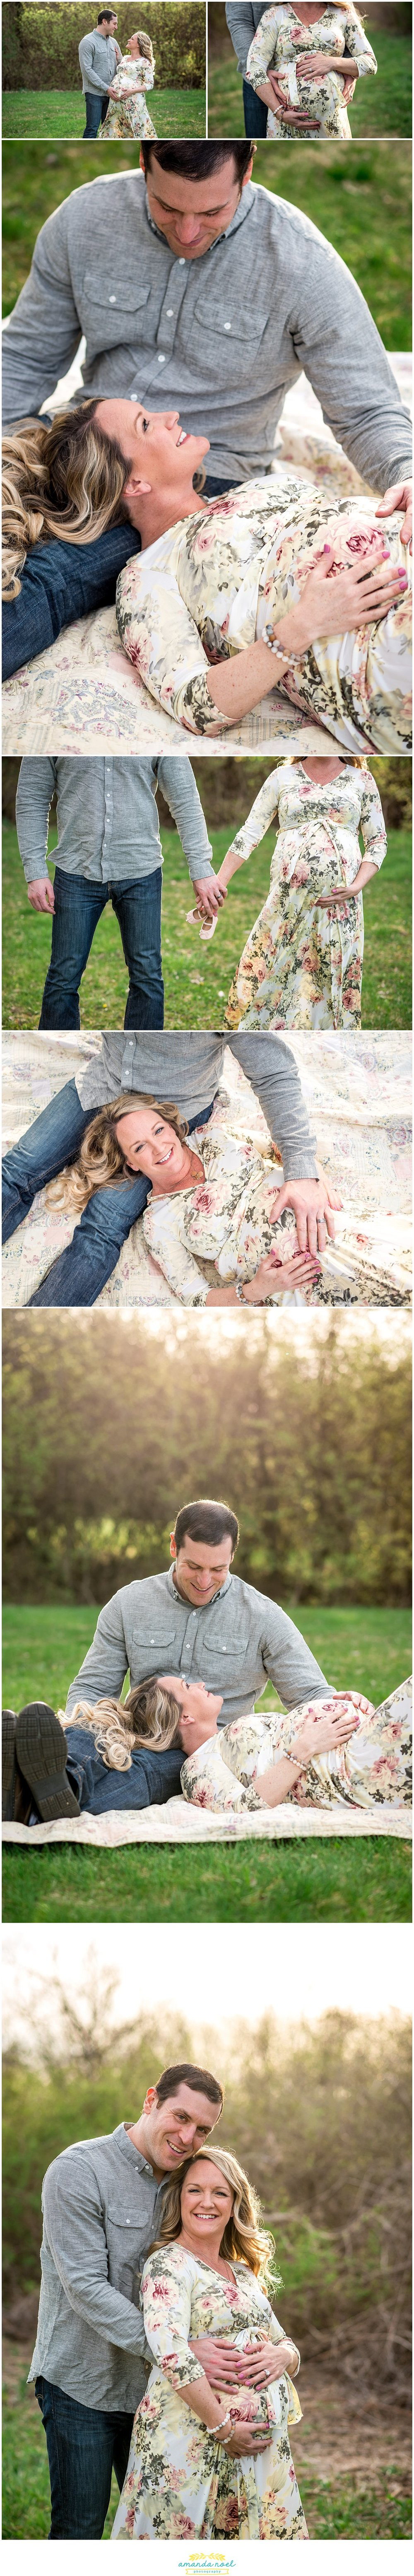 Dayton Ohio maternity photographer | Amanda Noel Photography | Spring sunset maternity session